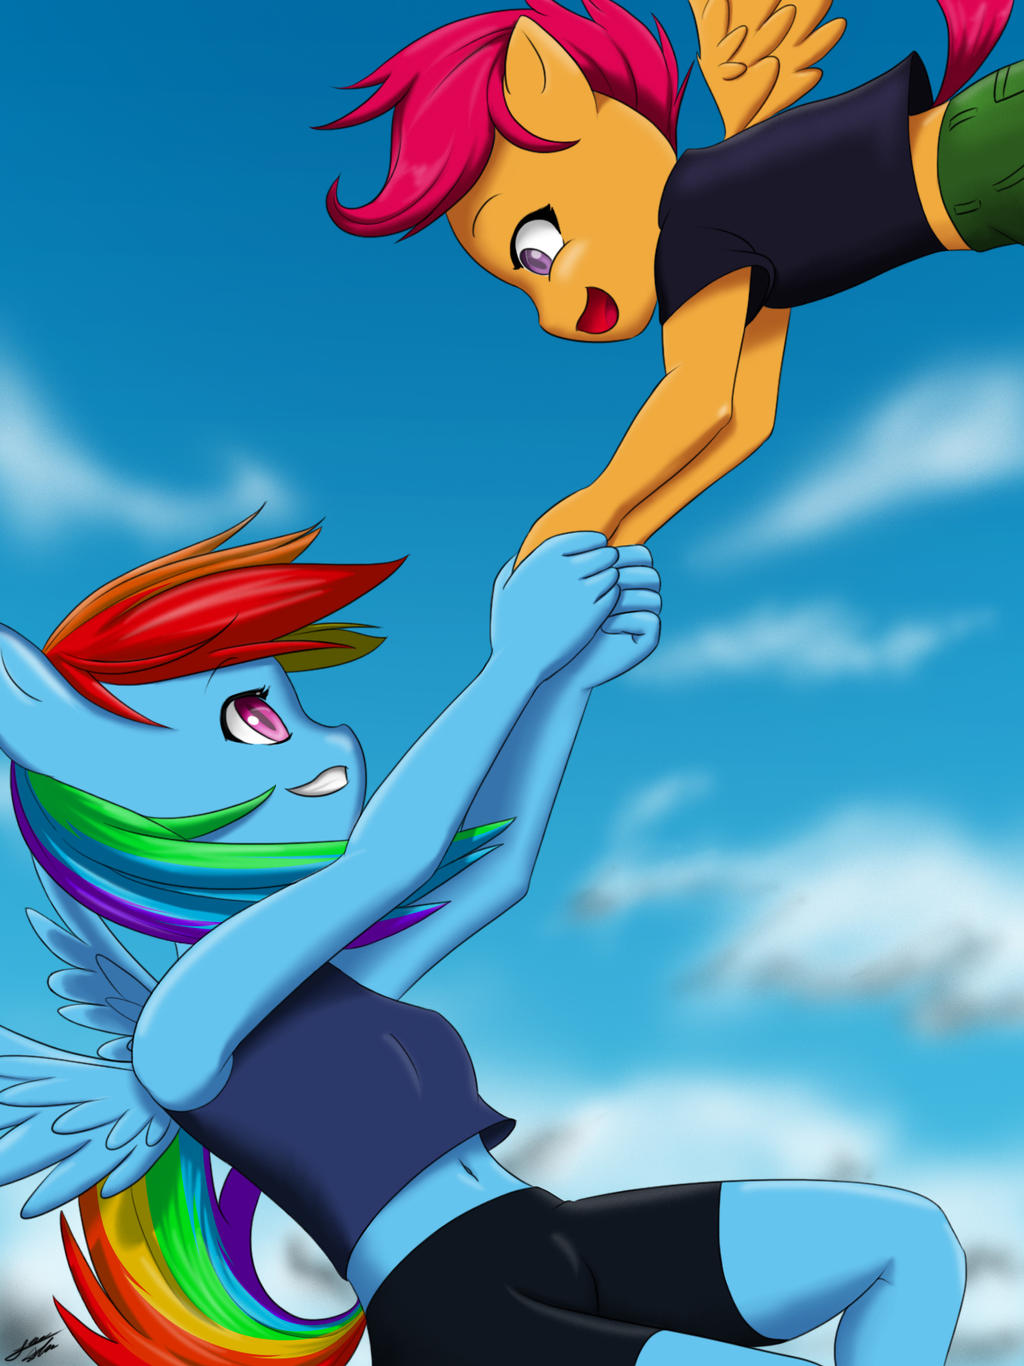 Rainbow Dash And Scootaloo By Skecchiart On Deviantart However rainbow dash tells scootaloo that this is not as important as she thinks and that, regardless of whether she'll fly or not, she's still special in her own way. rainbow dash and scootaloo by